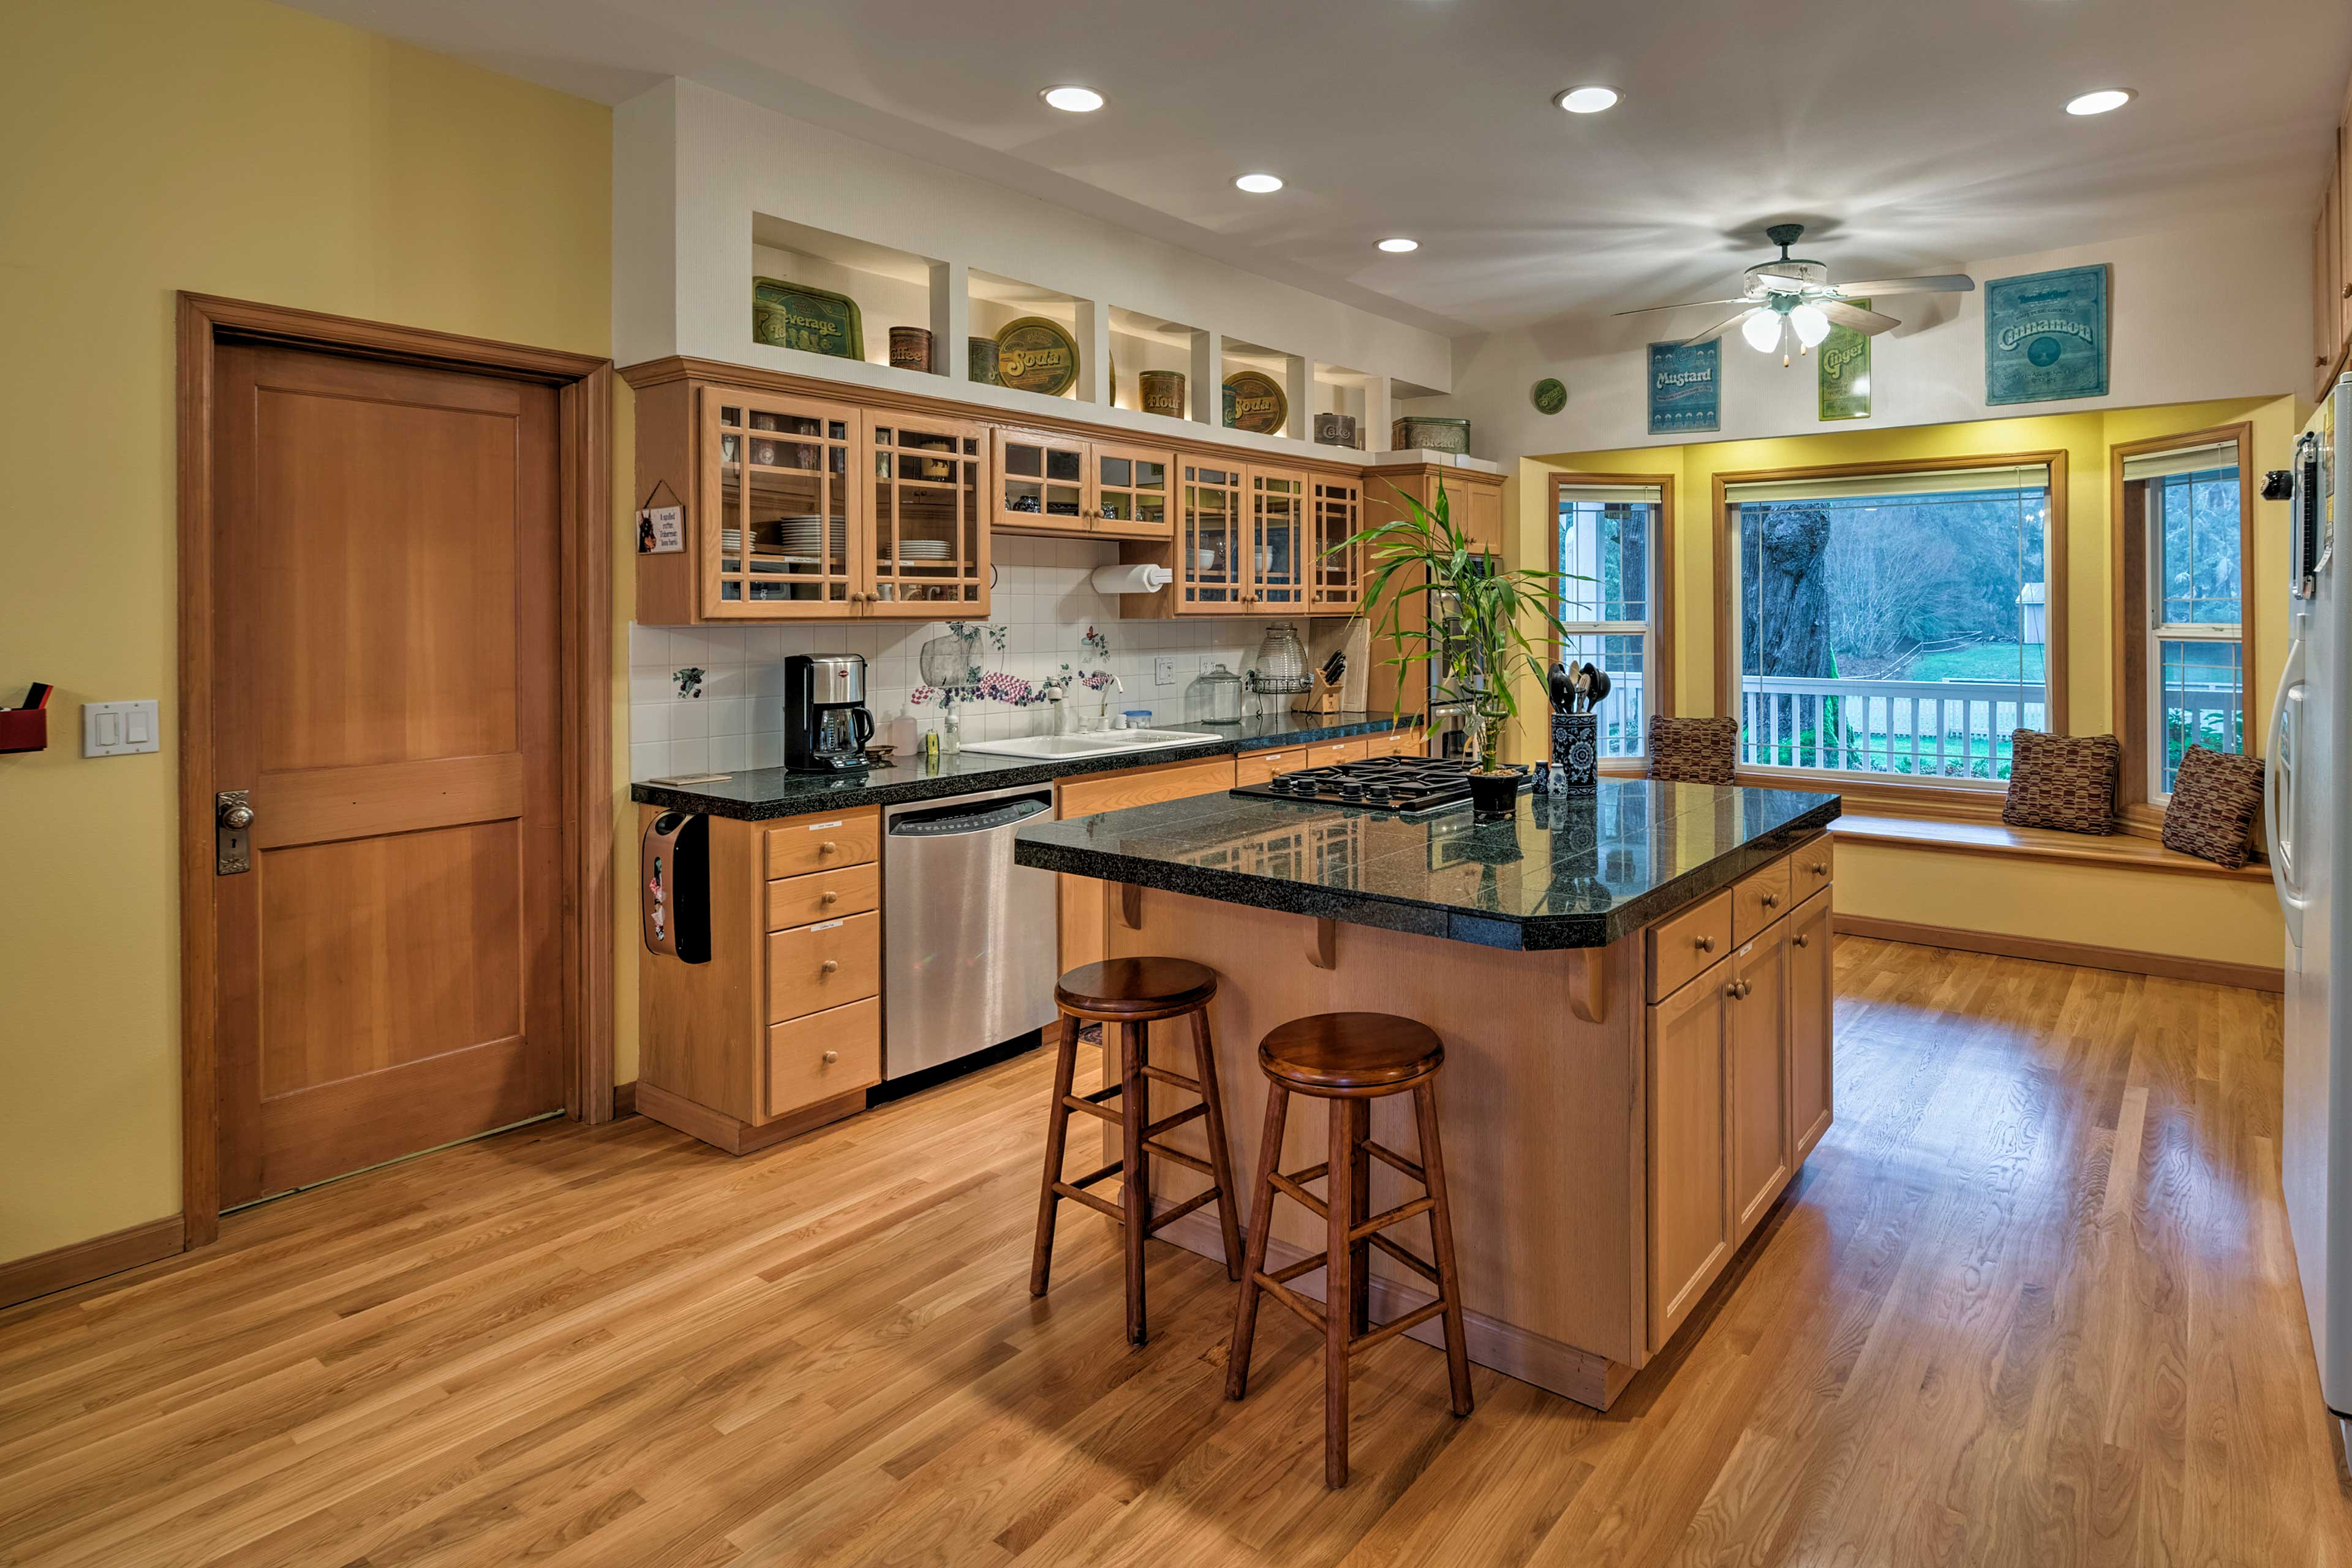 Channel your inner Iron Chef in this fully equipped kitchen.